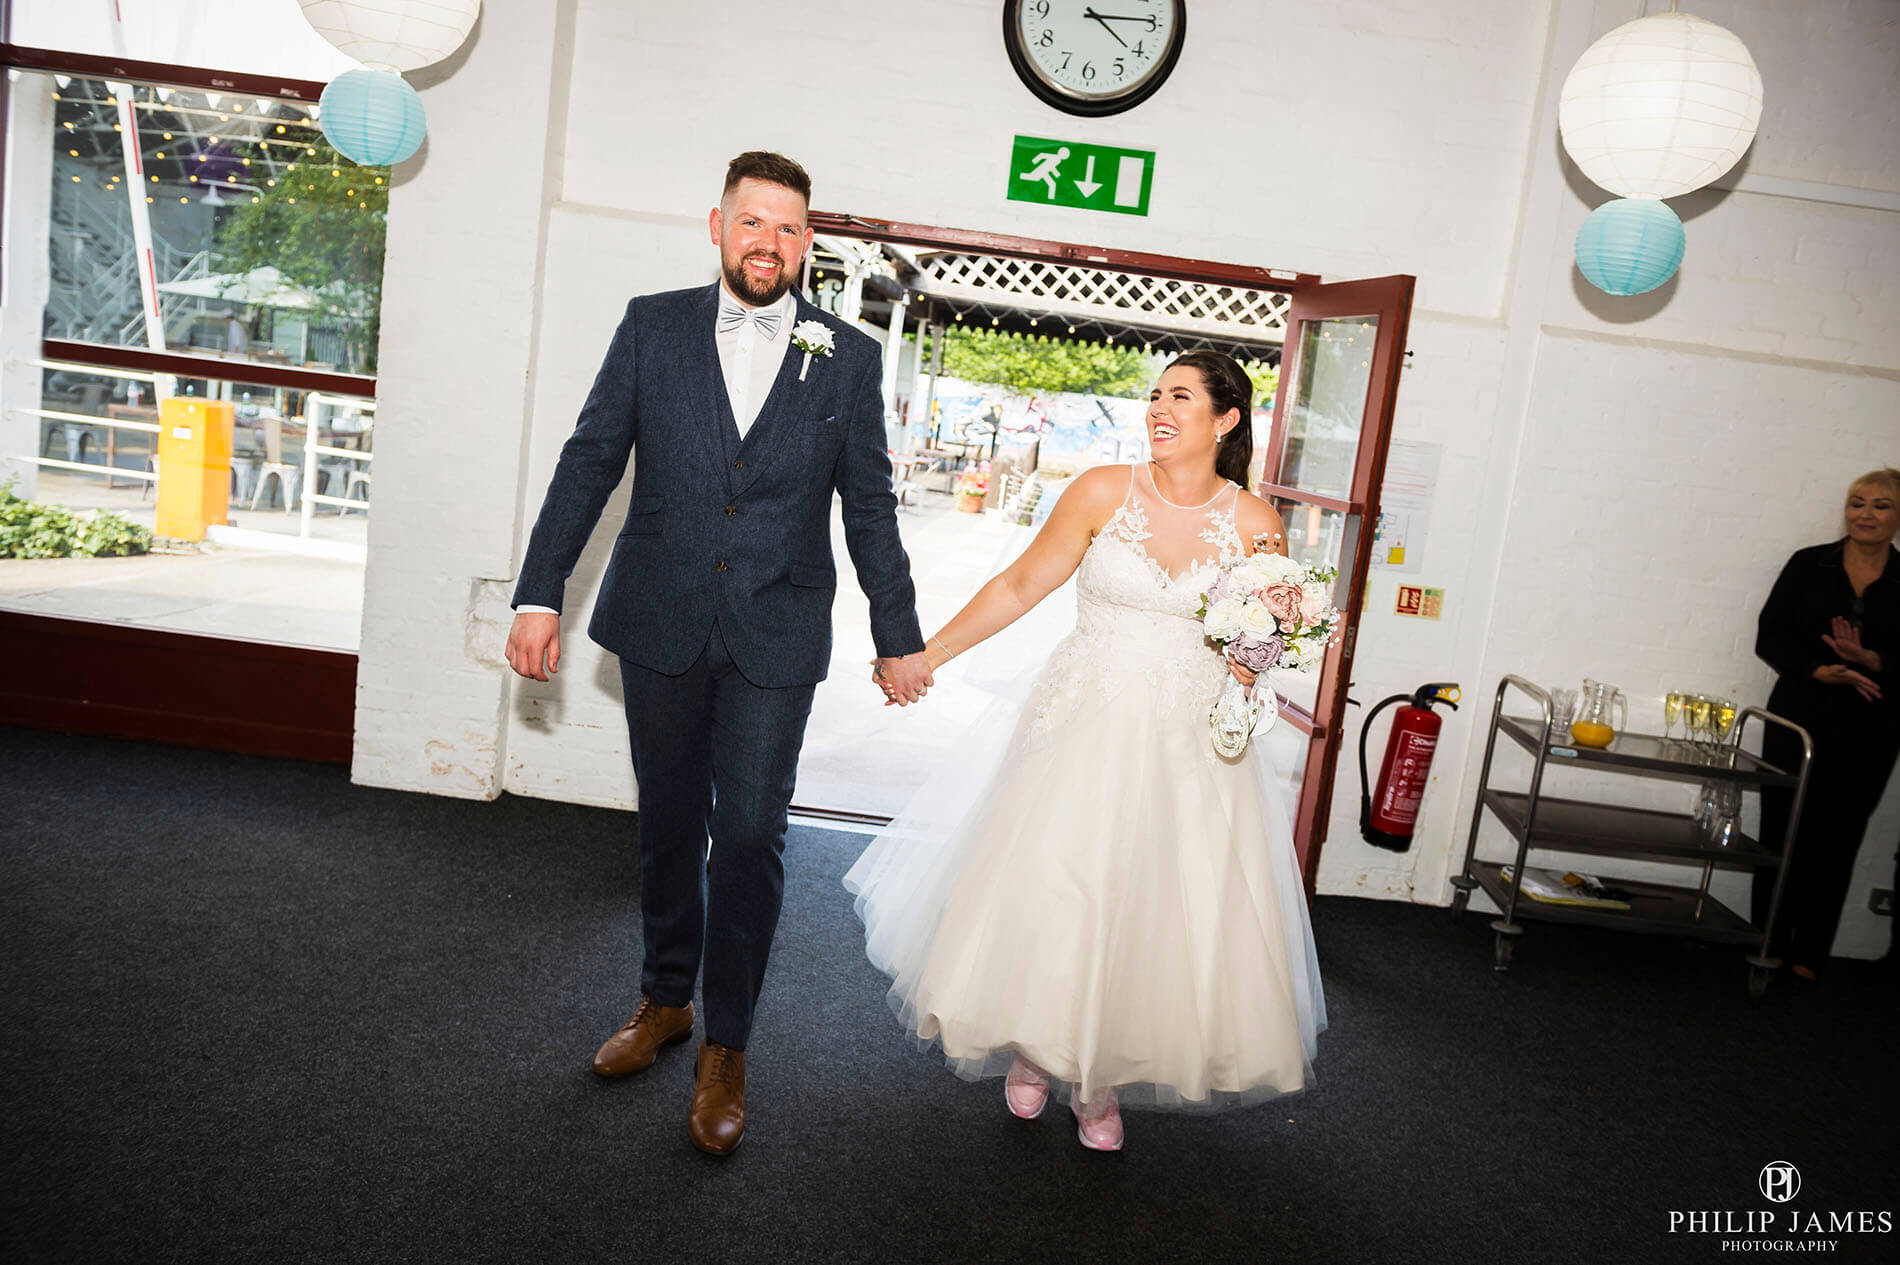 The Bond Company Wedding Photographer - Philip James covers Birmingham, The West Midlands, Warwickshire, Solihull and all over the UK. Wedding photography Birmingham is my passion